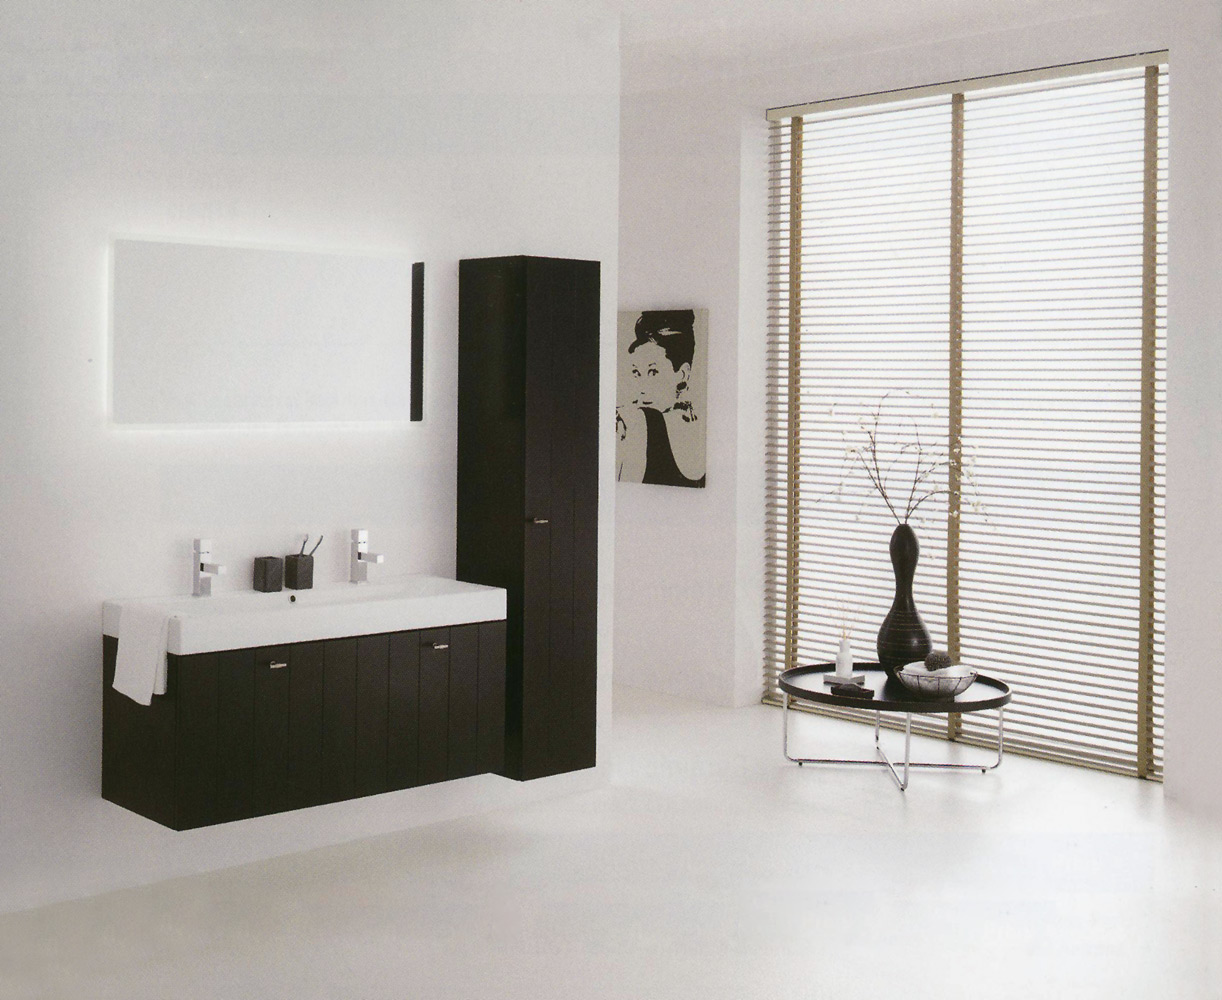 exklusive partnervermittlung schweiz. Black Bedroom Furniture Sets. Home Design Ideas